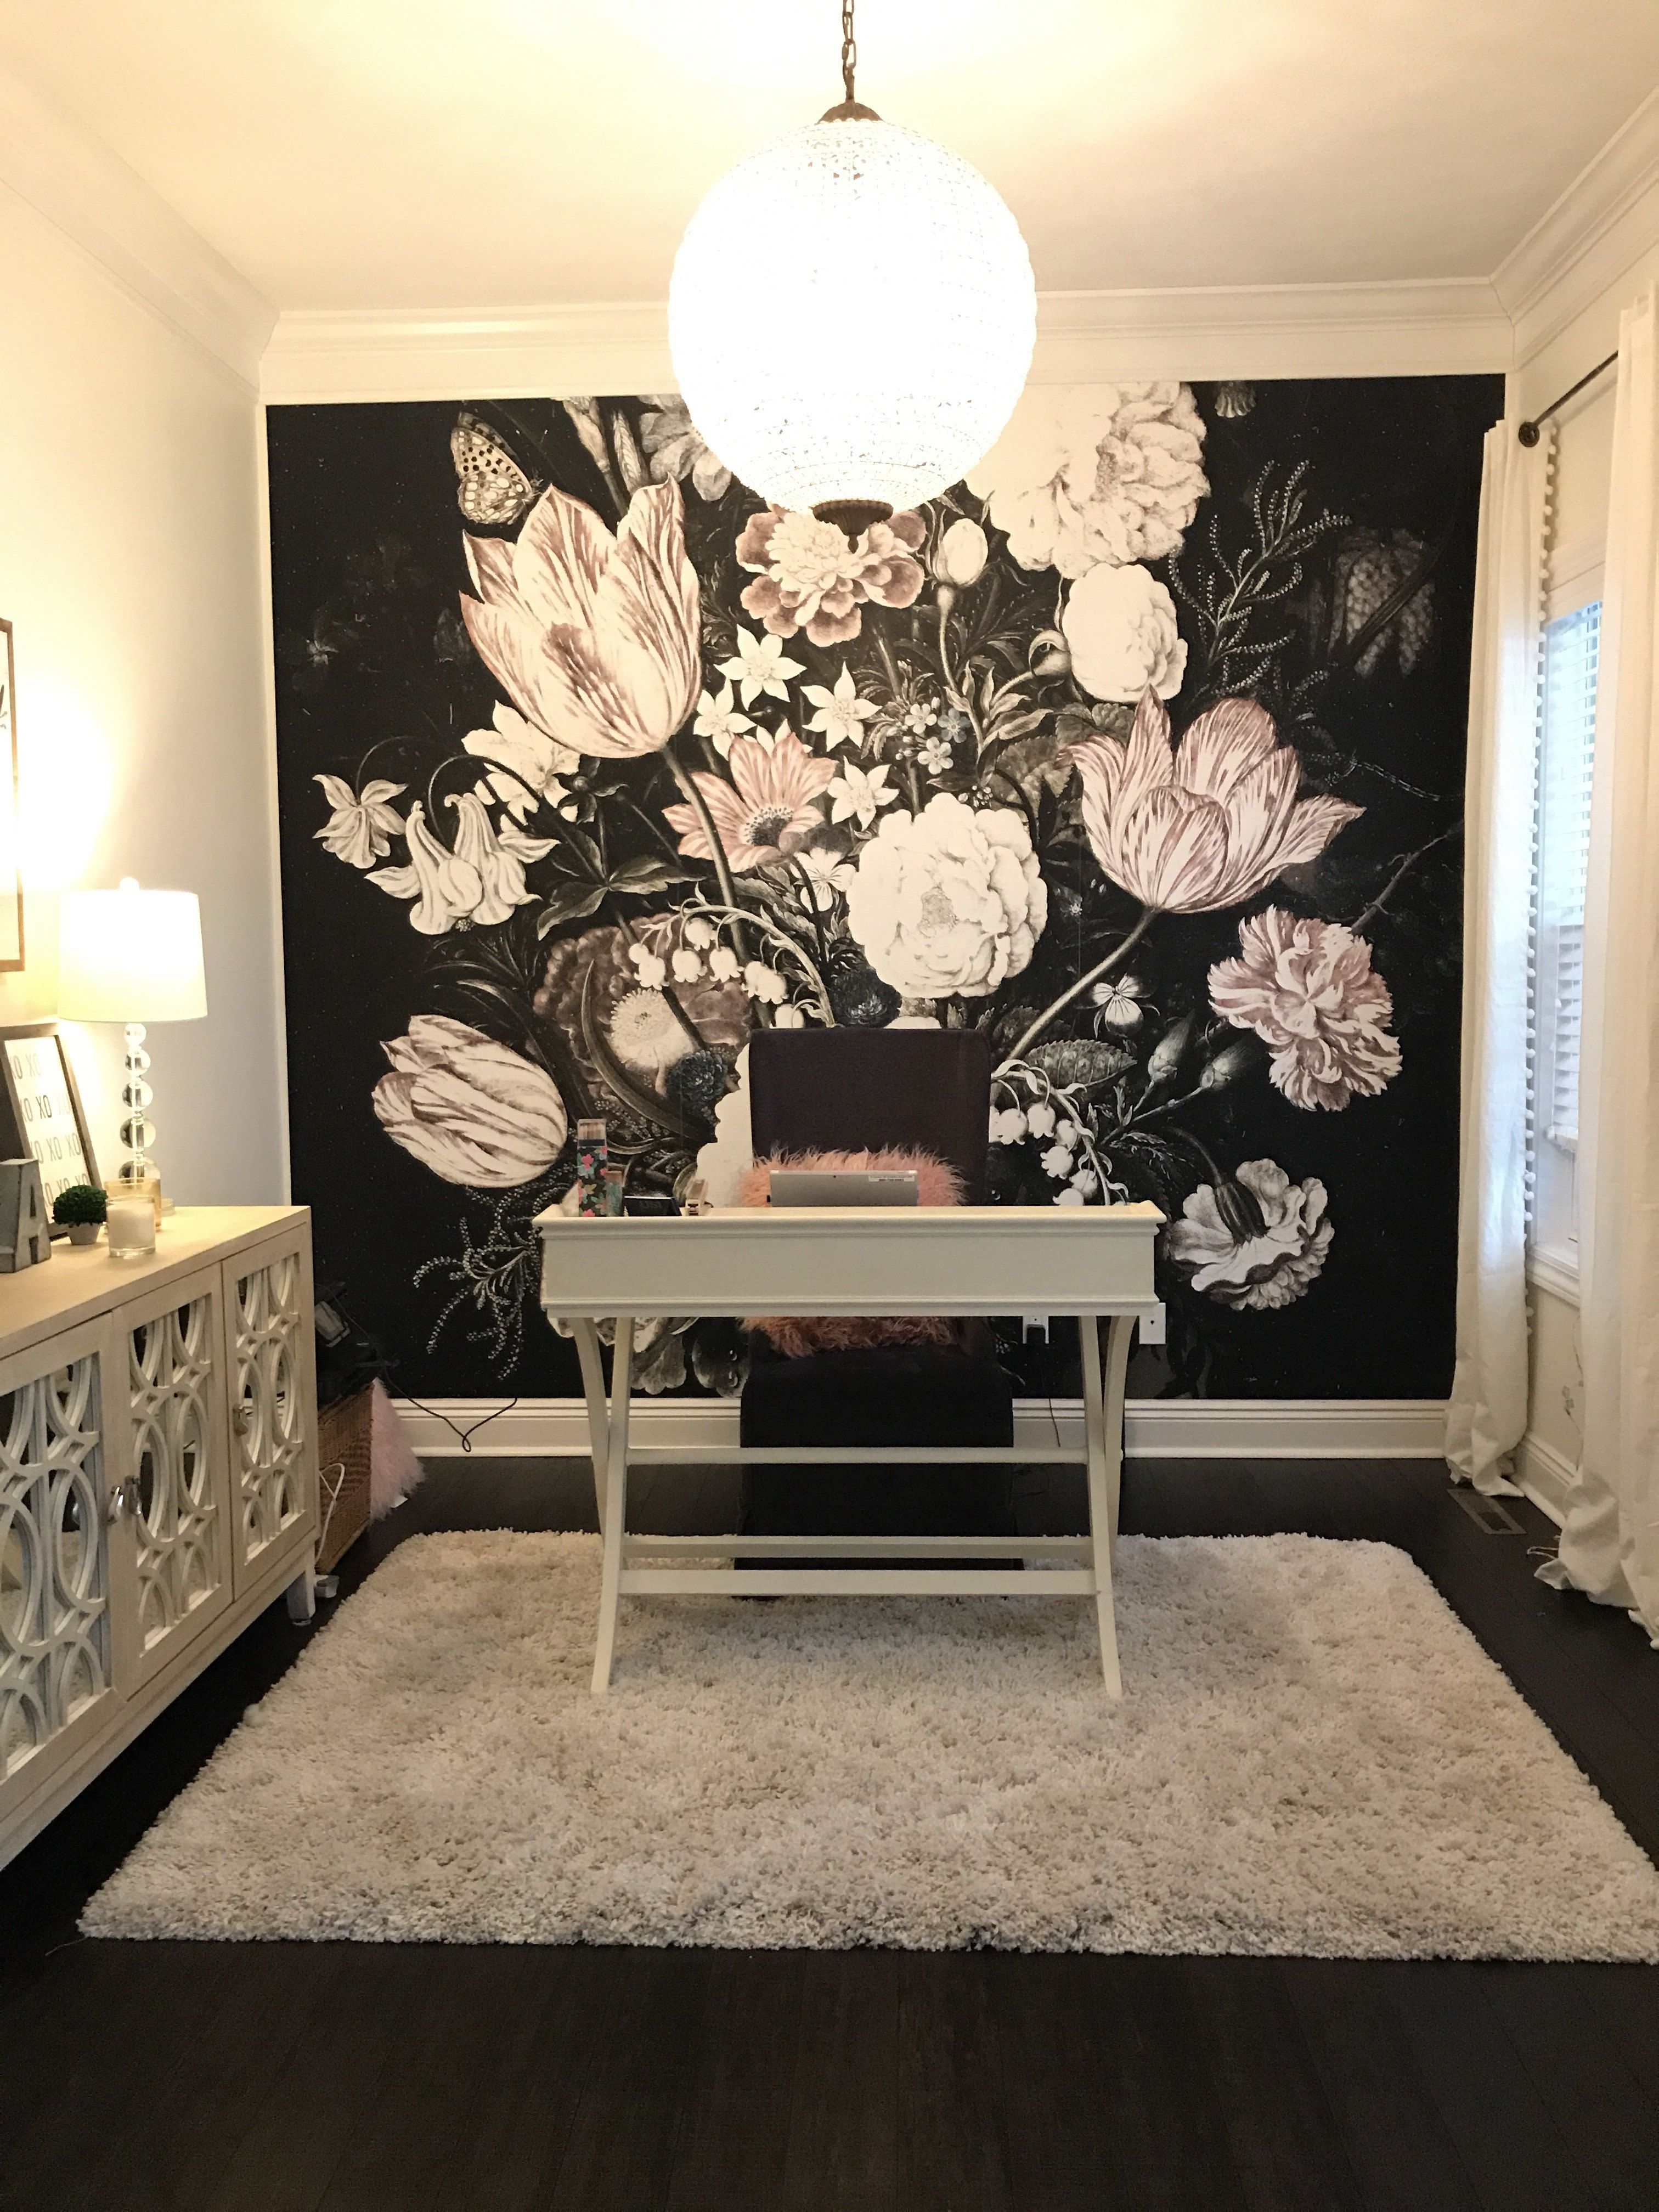 Interesting Vintage Home Office Decoration Removable Wall Mural Makes The Interior Very Stylish Removab Vintage Home Offices Home Office Decor Floral Bedroom